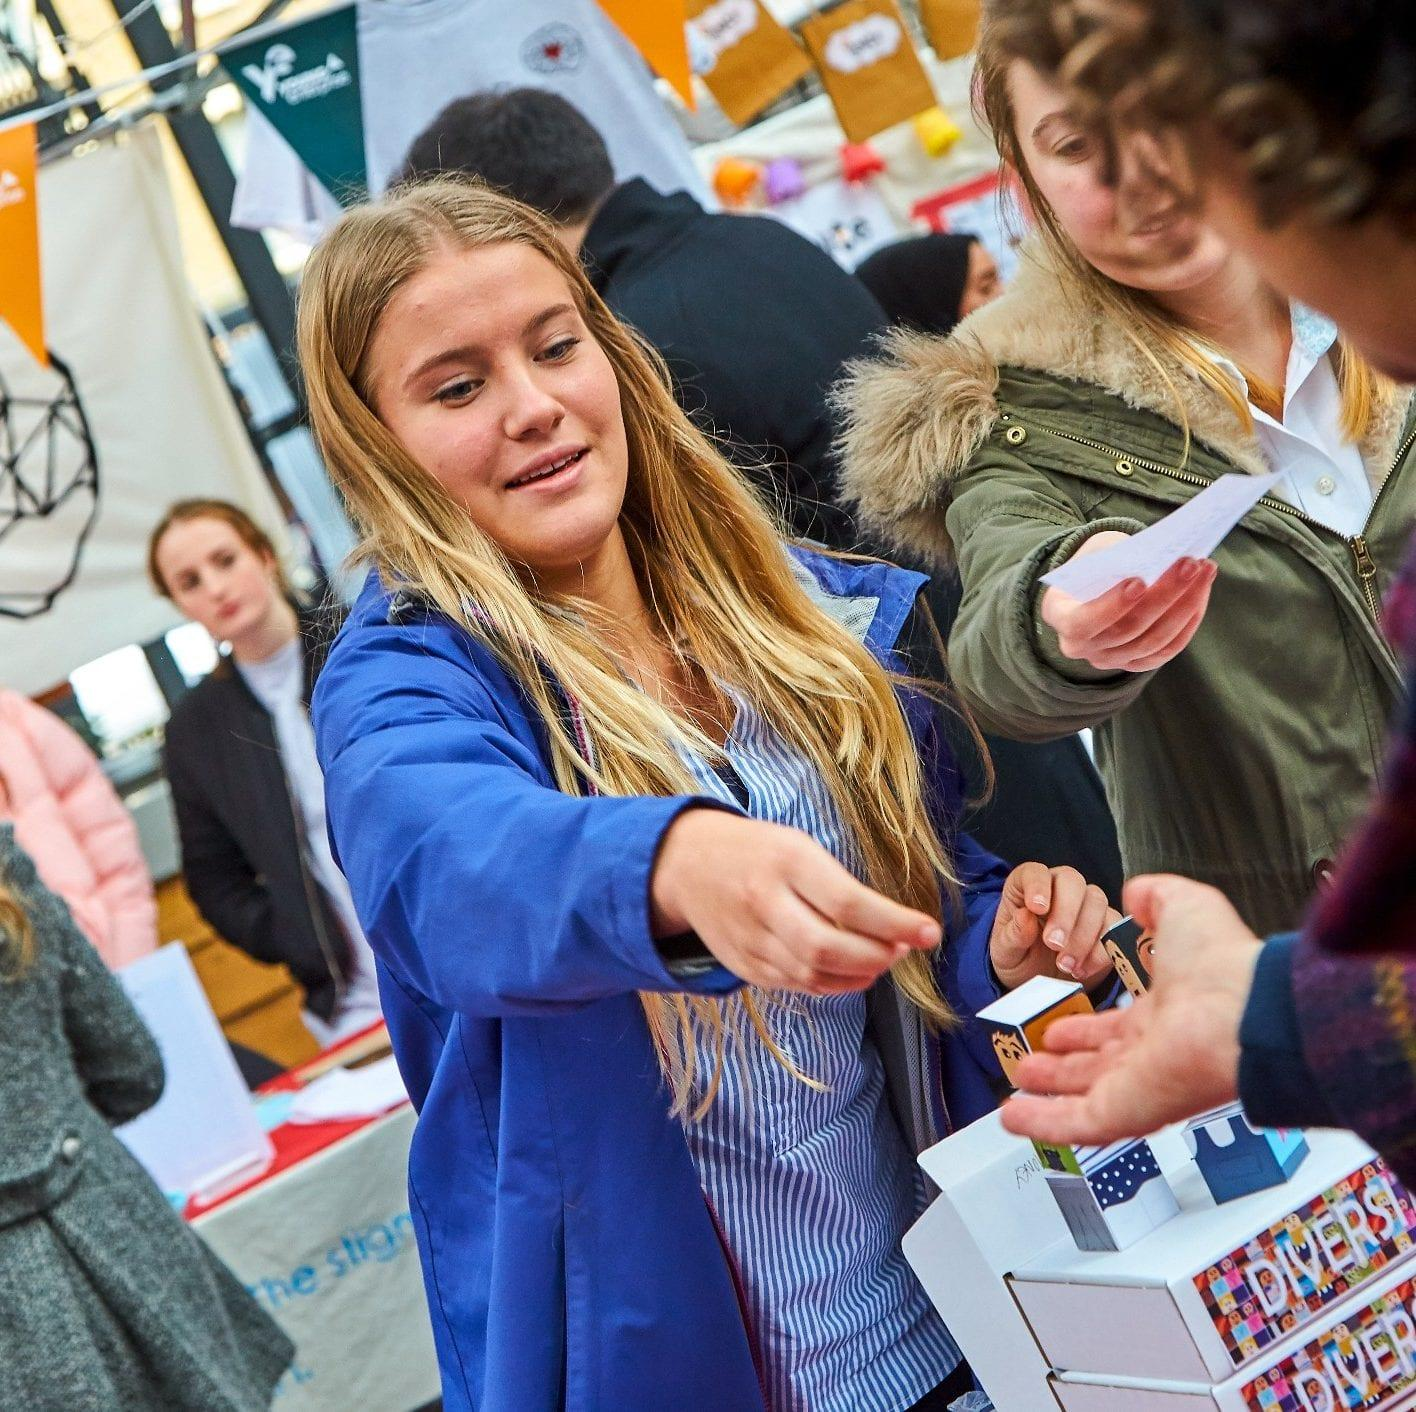 Essex Students take part in Young Enterprise Trade Fair